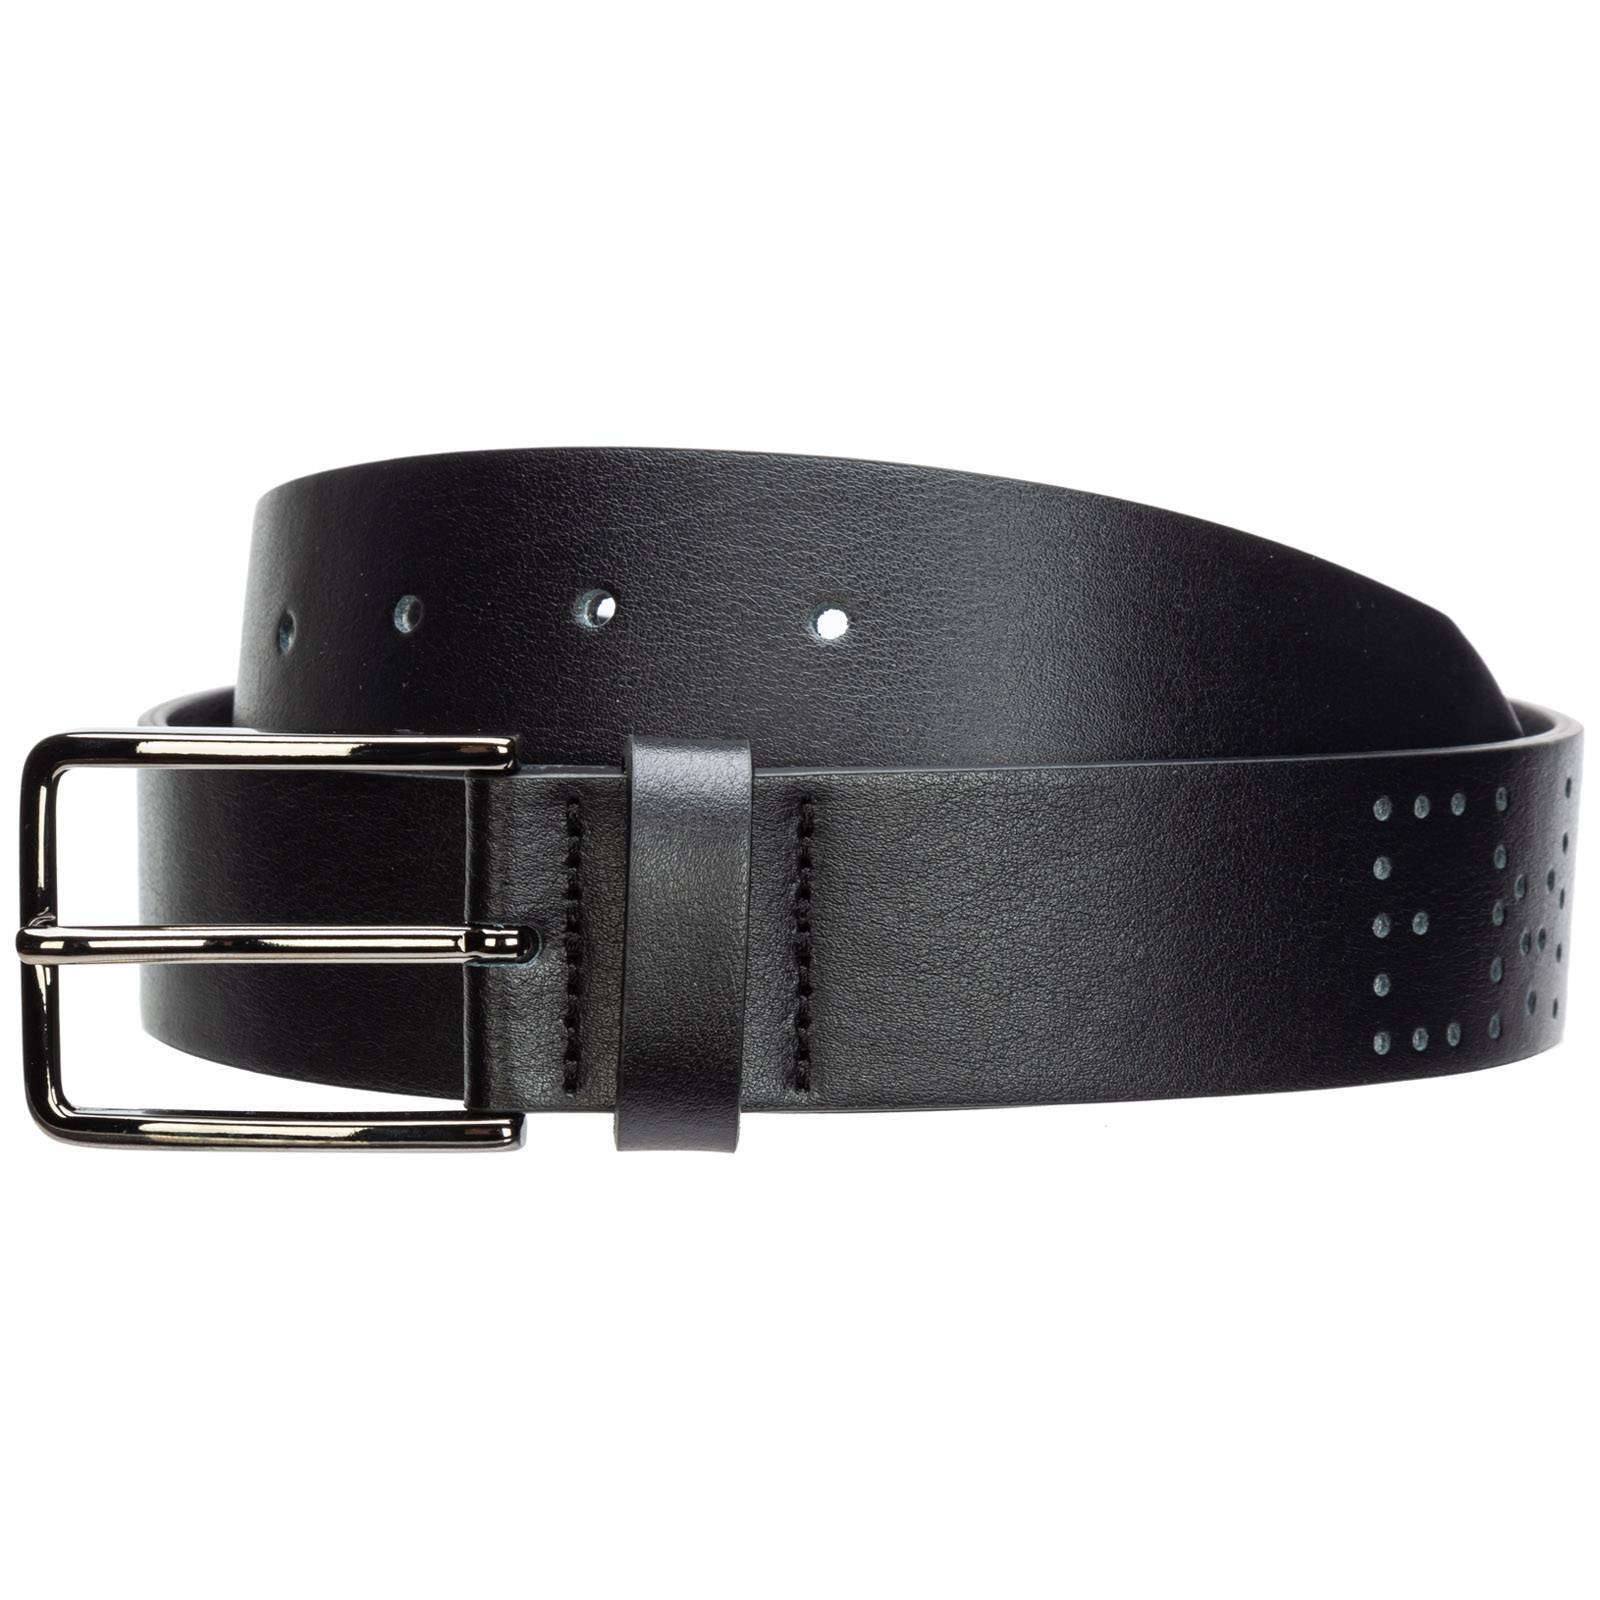 Emporio Armani Men's genuine leather belt  - Black - Size: 90